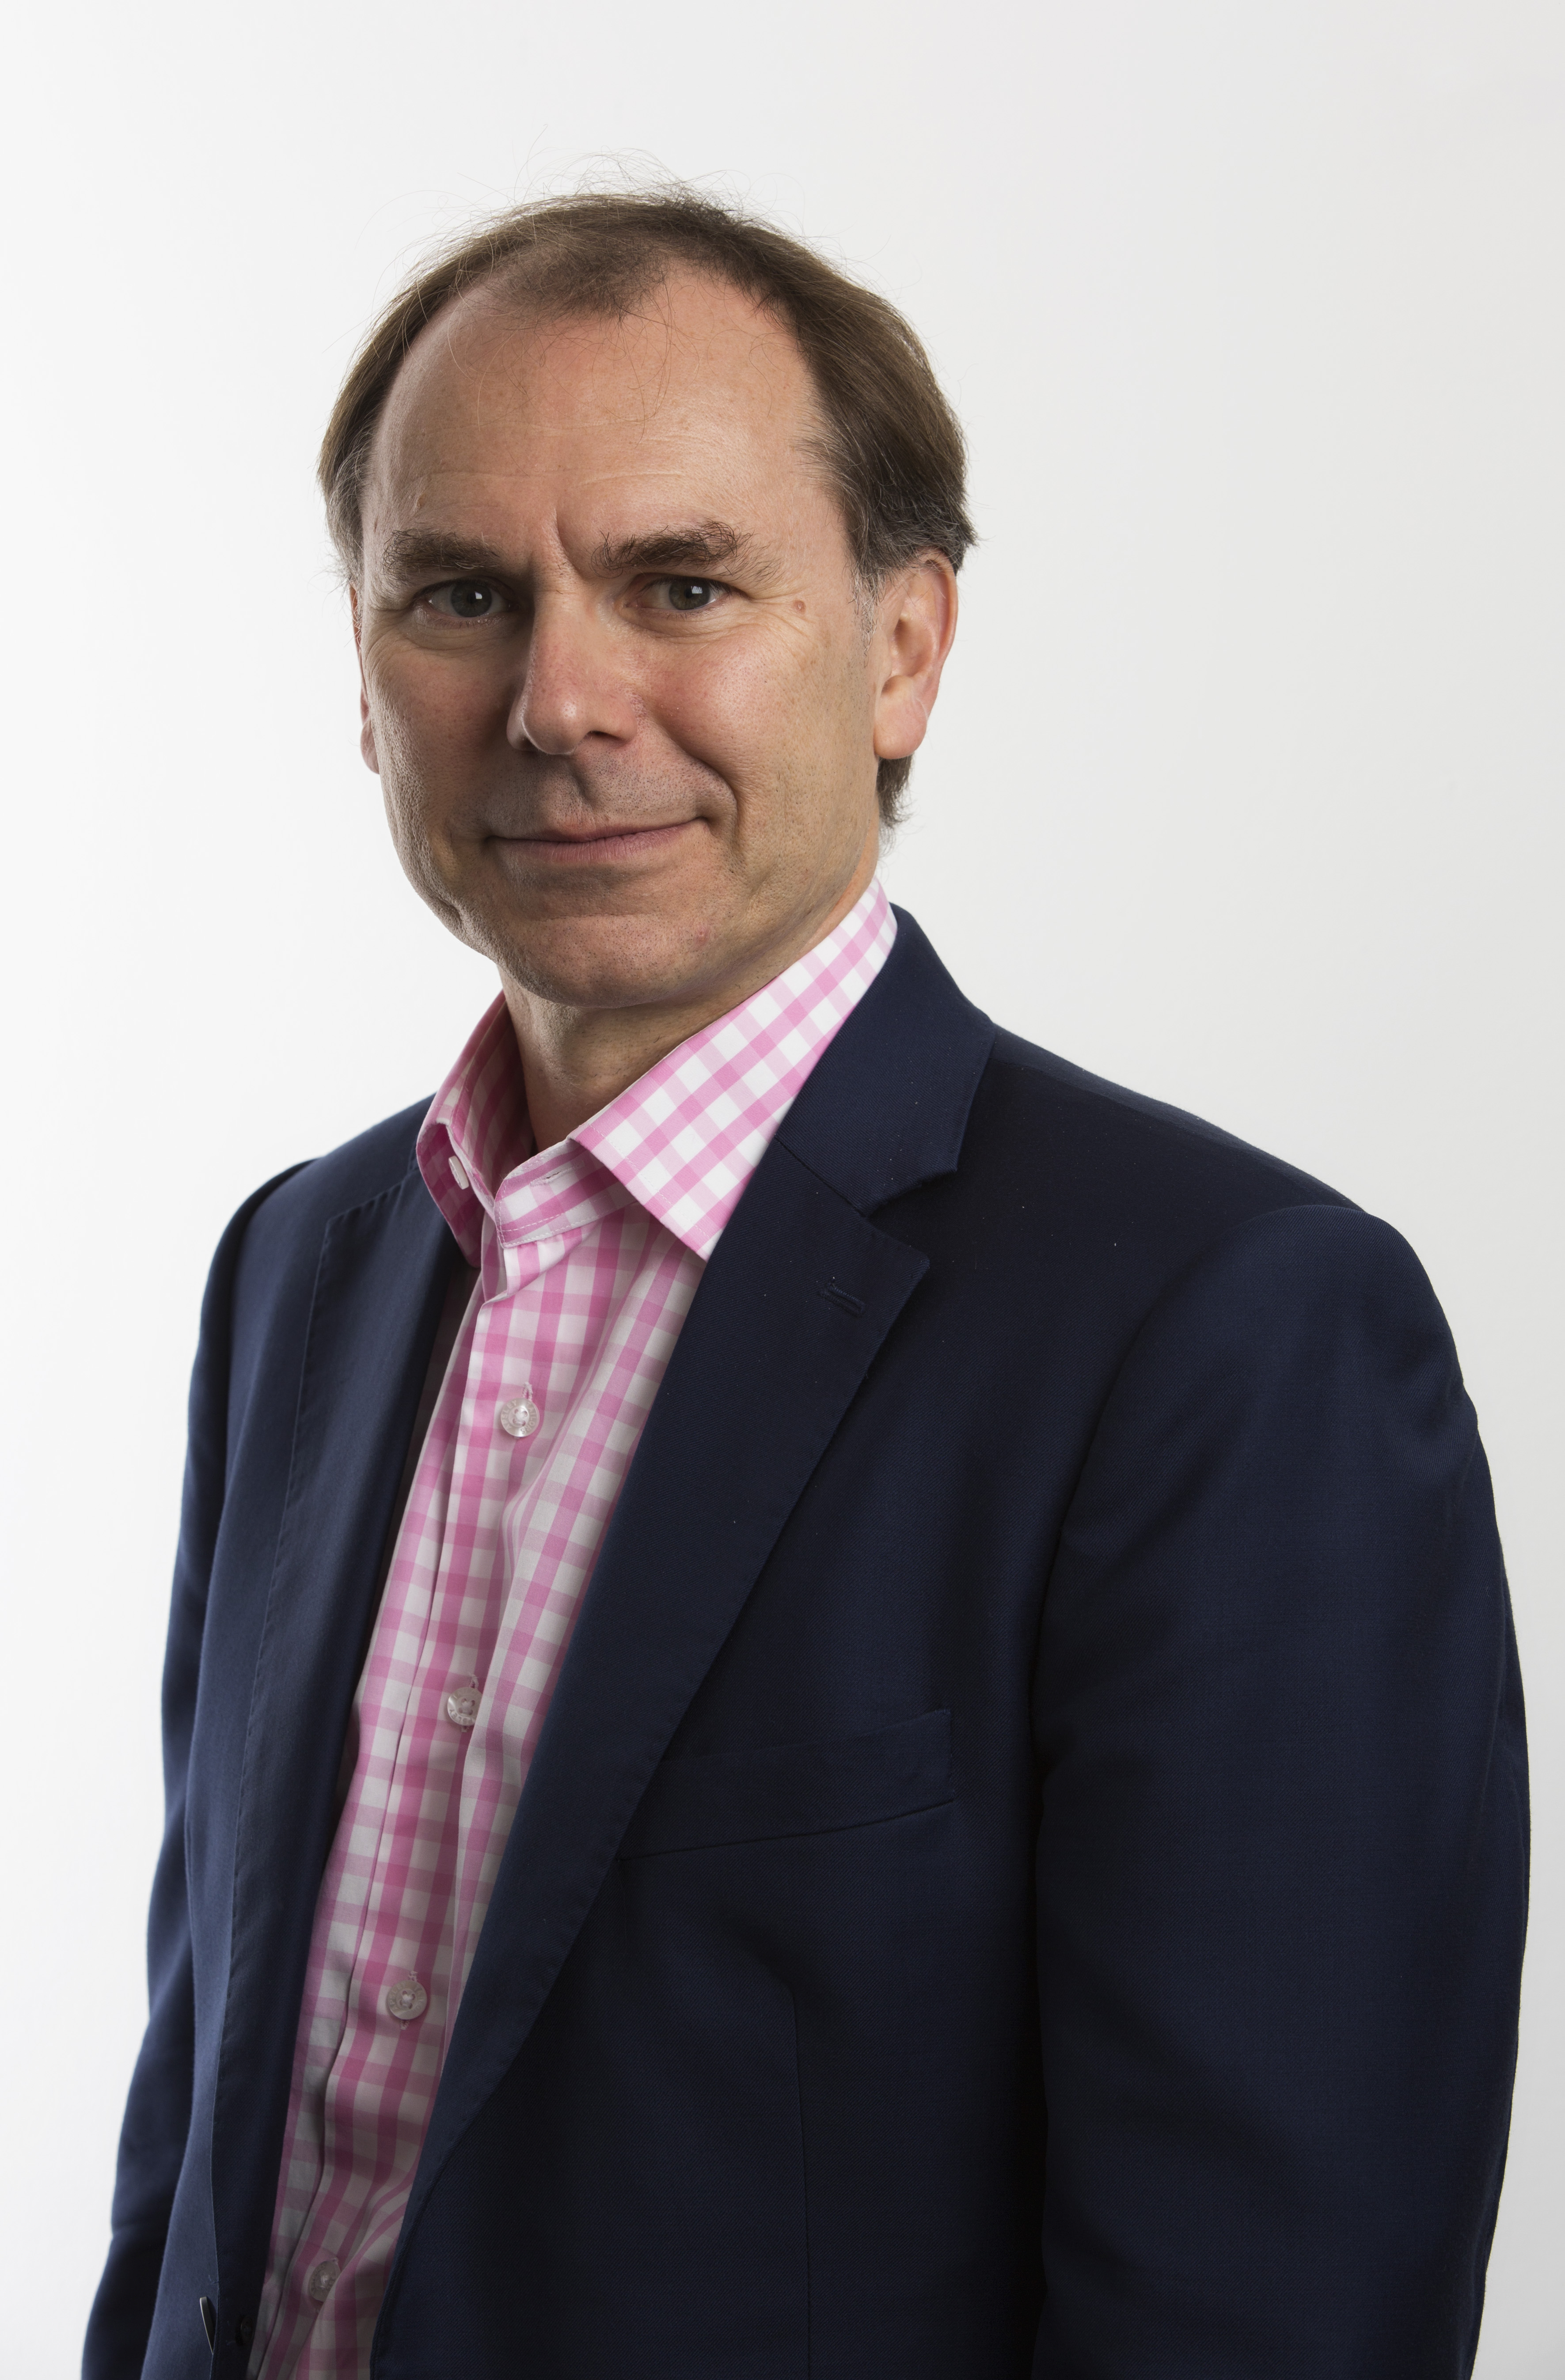 Tony Langham, Chief Executive, FCIPR